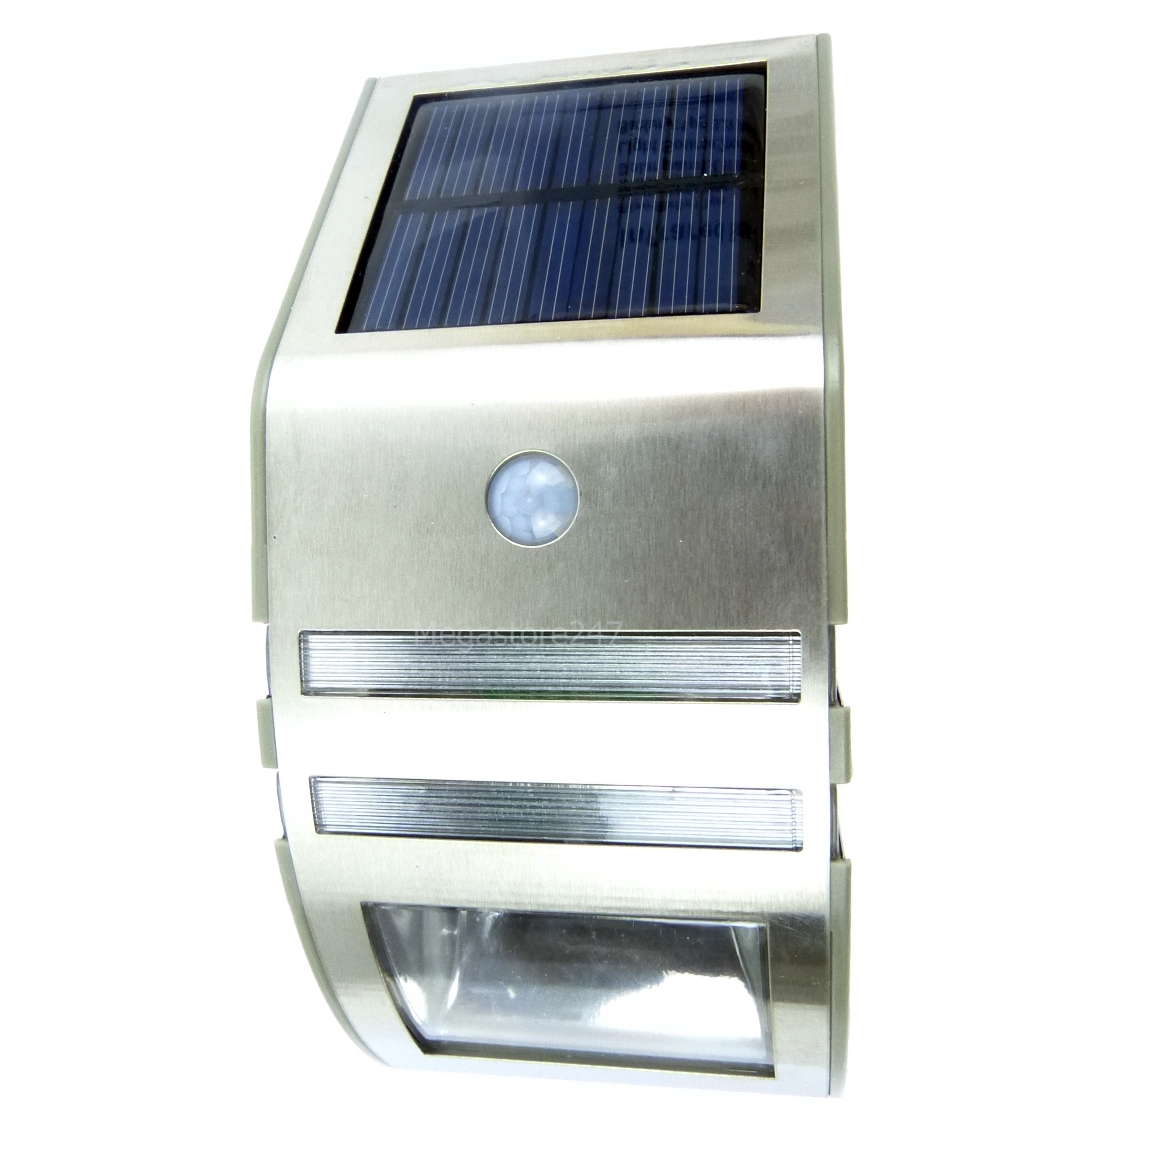 hyfive led solar motion sensor pir detection. Black Bedroom Furniture Sets. Home Design Ideas